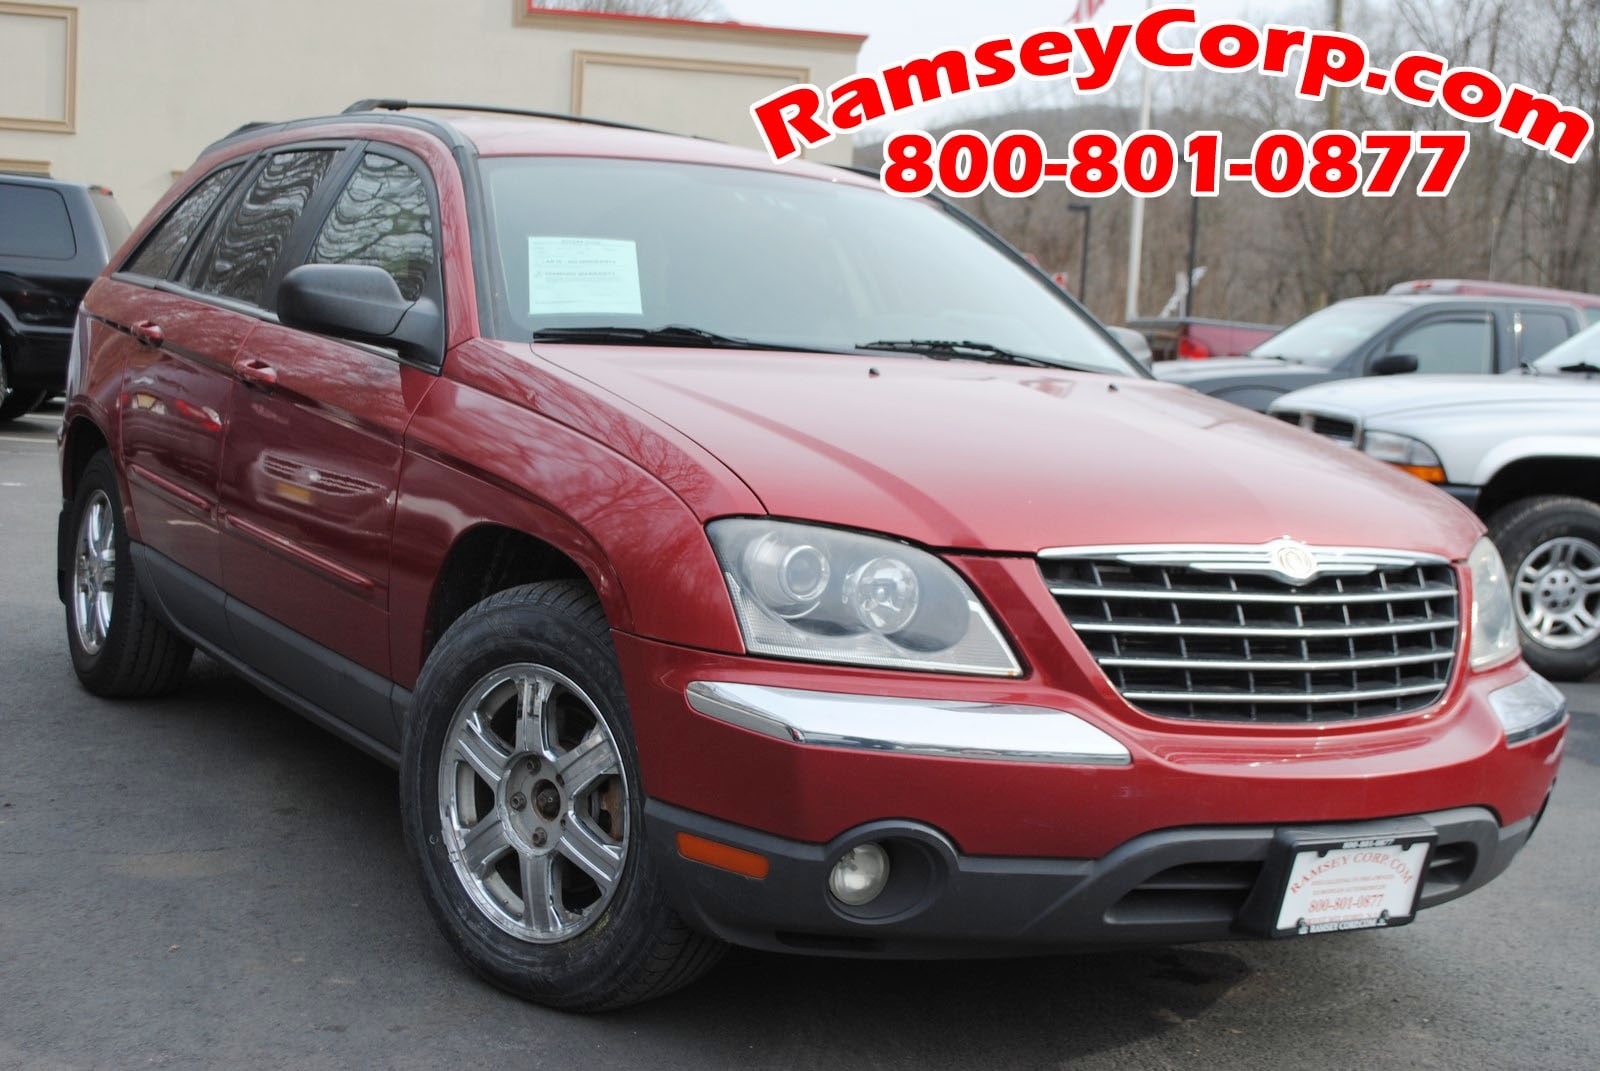 Used 2004 Chrysler Pacifica For Sale at Ramsey Corp. | VIN:  2C8GF68454R294139